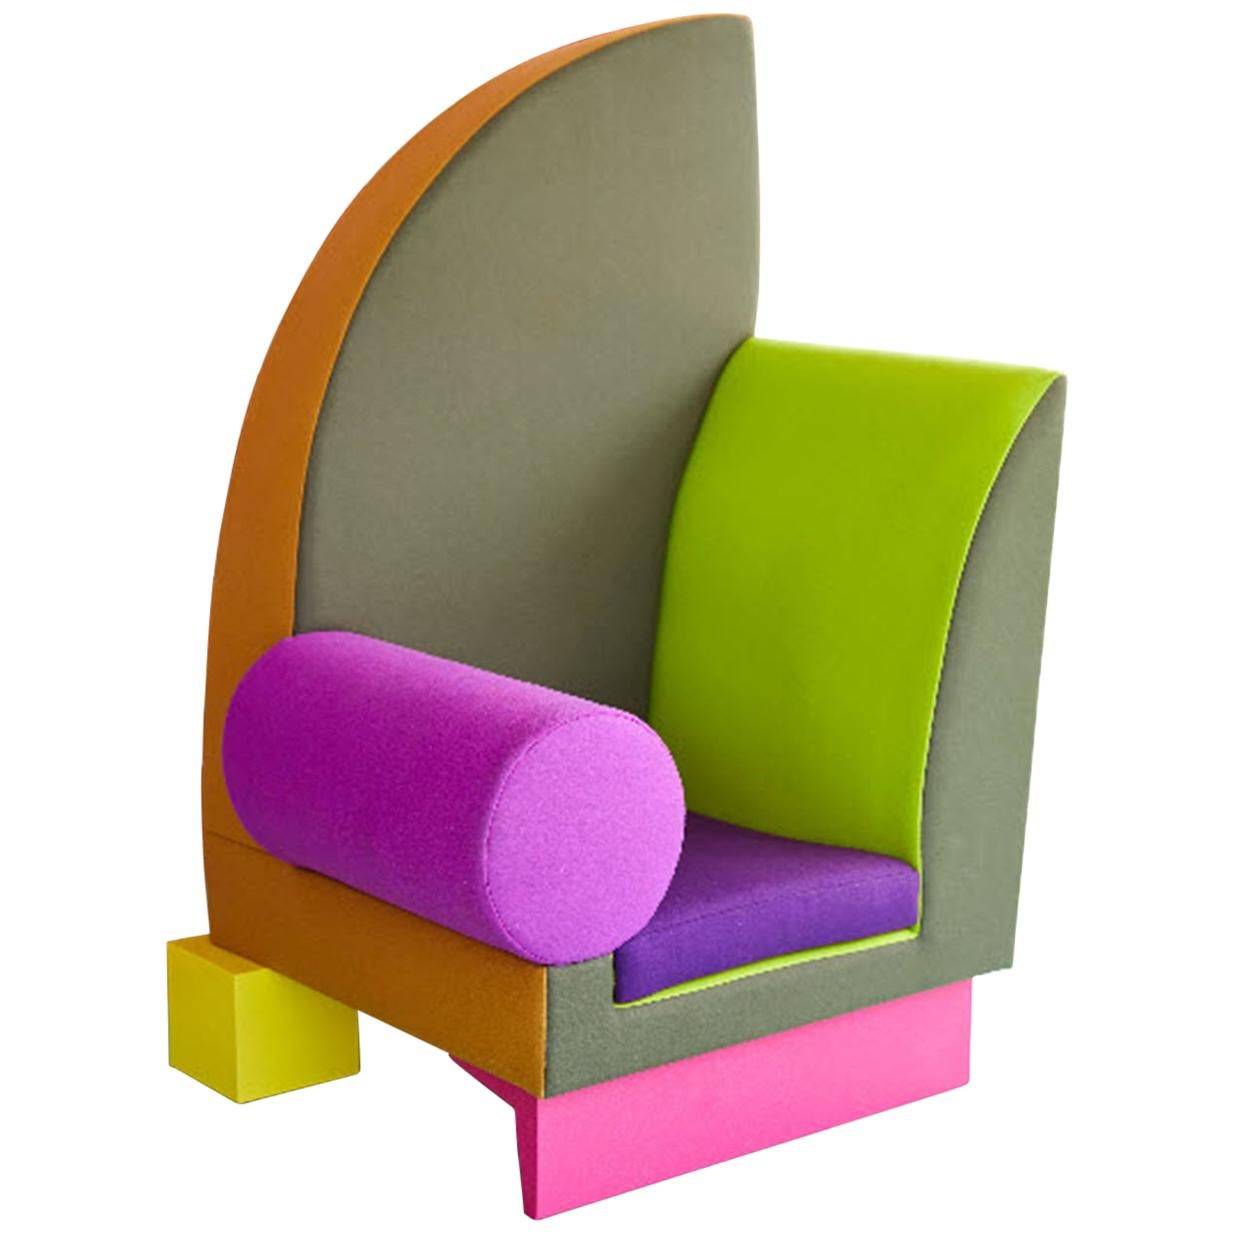 'Cairo' Chair by Peter Shire, 2018